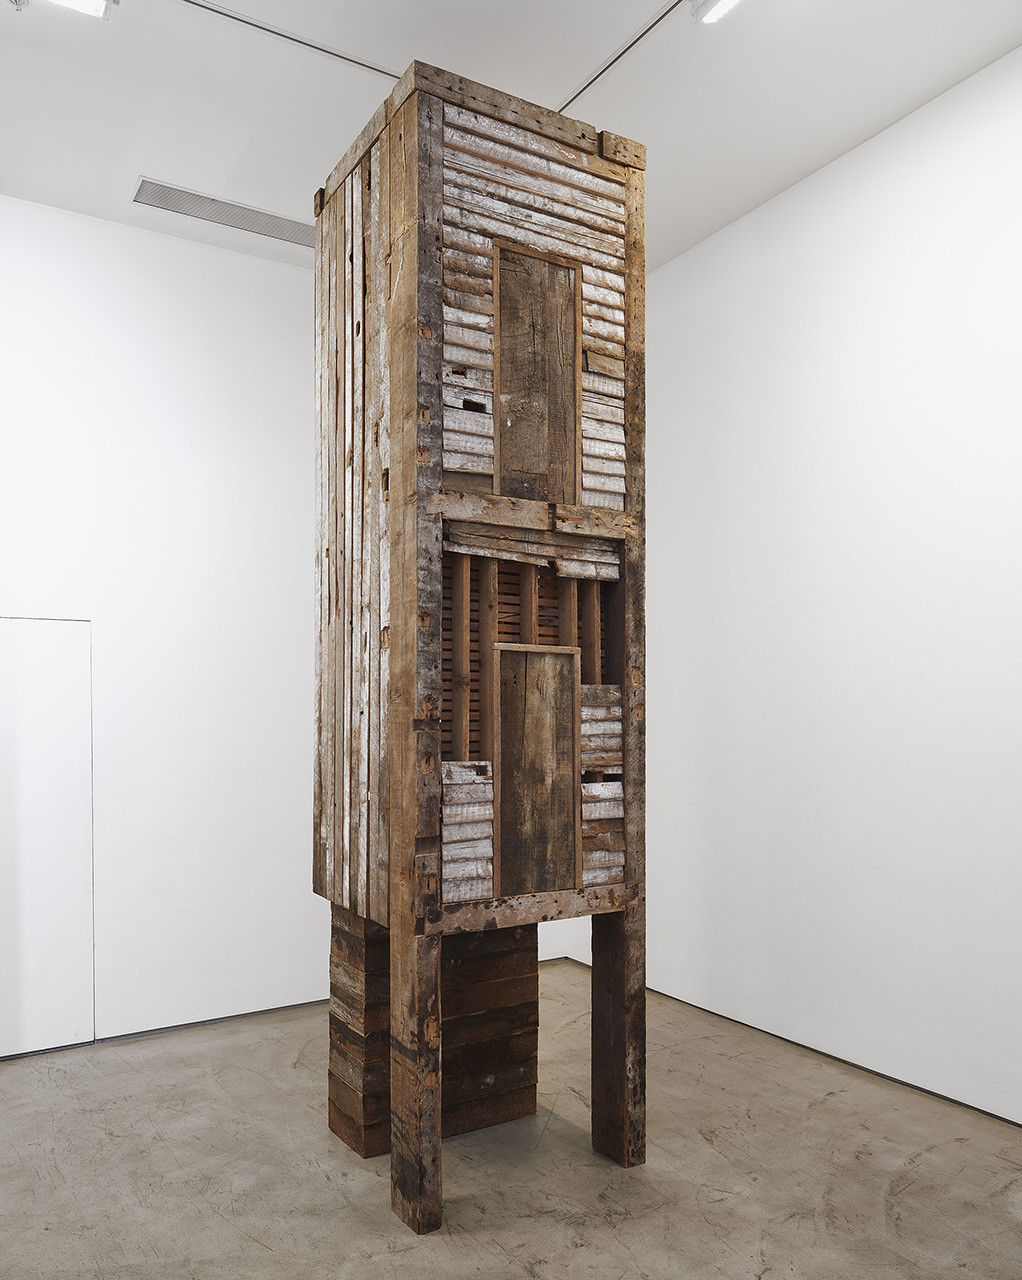 <p>Marianne Vitale, Double Decker Outhouse, 2011</p>